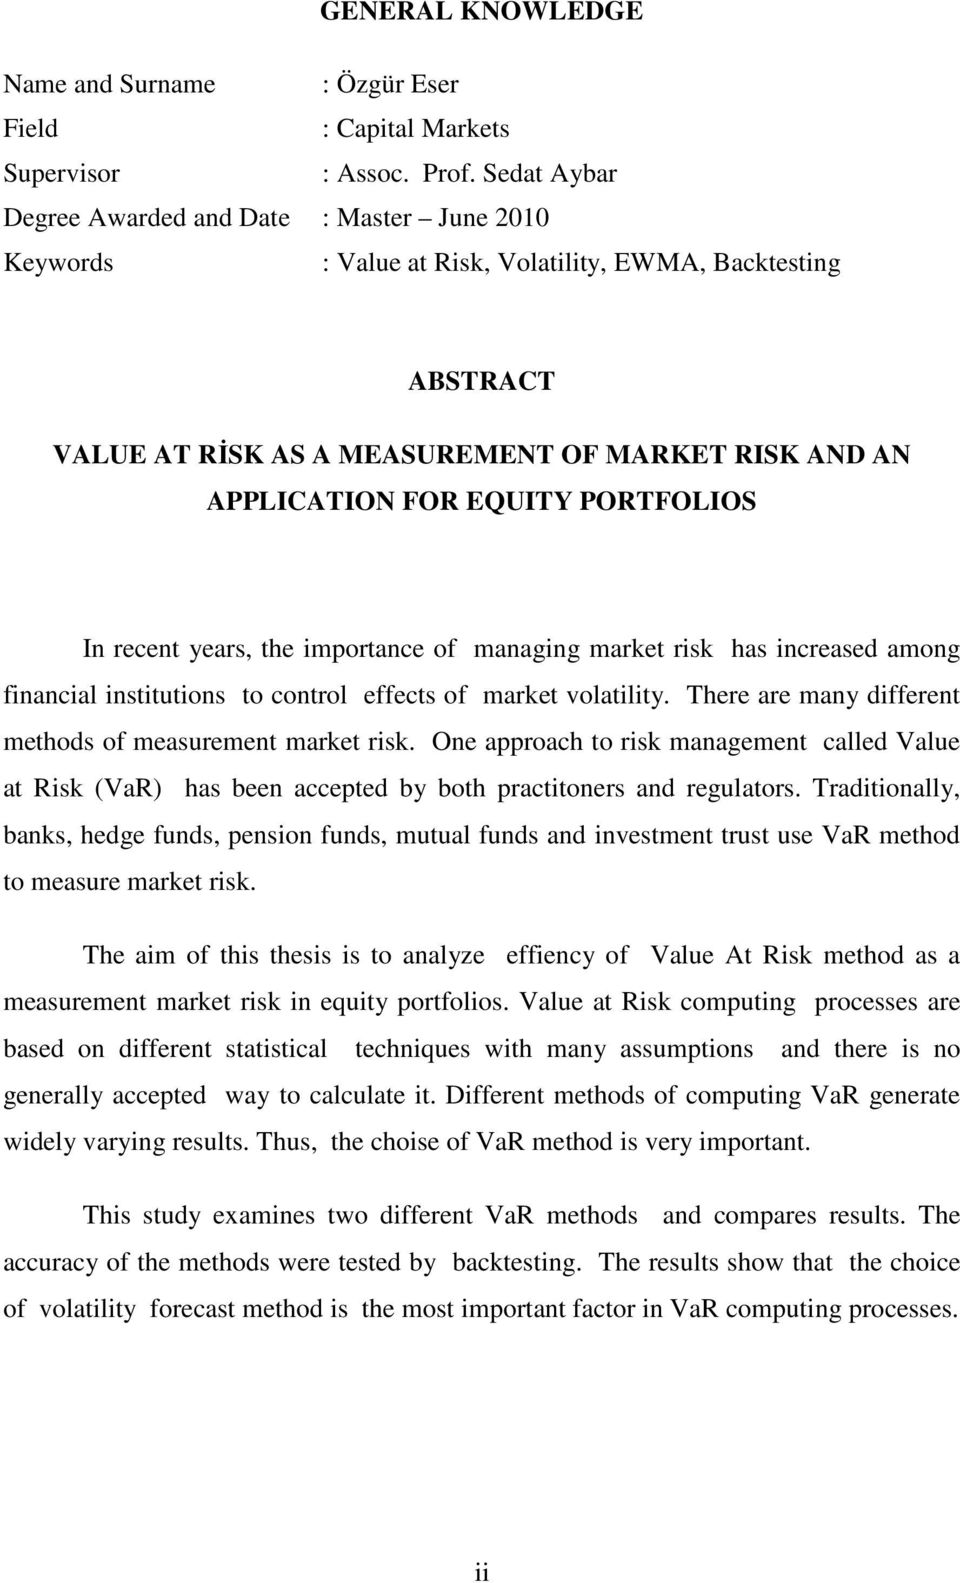 PORTFOLIOS In recent years, the importance of managing market risk has increased among financial institutions to control effects of market volatility.